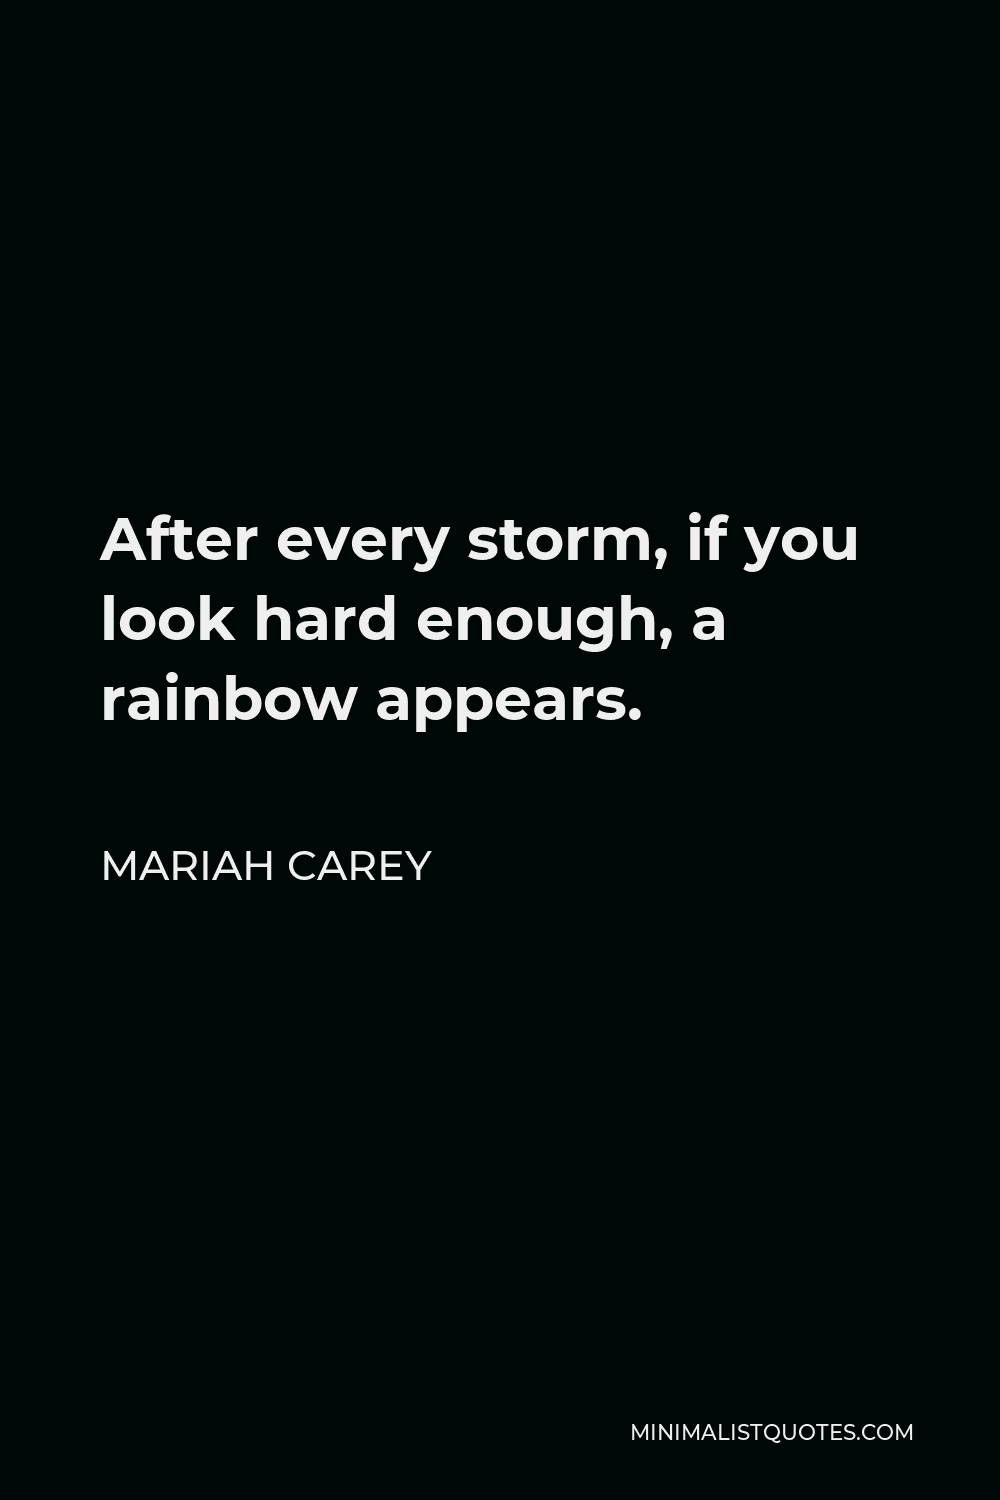 Mariah Carey Quote - After every storm, if you look hard enough, a rainbow appears.